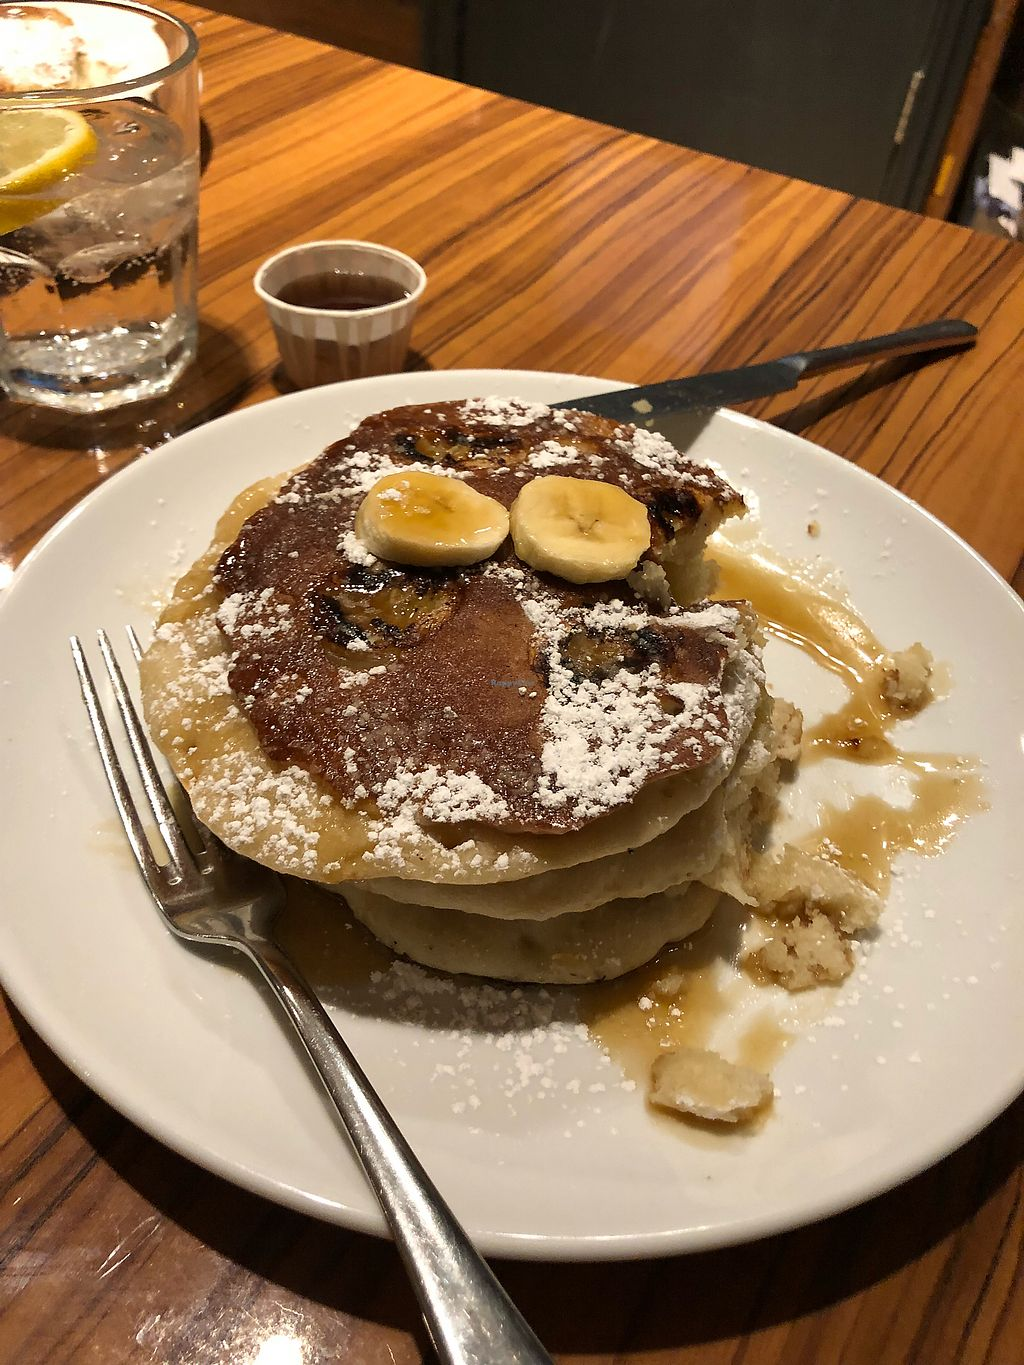 """Photo of The Diner - Islington  by <a href=""""/members/profile/CourtneyK"""">CourtneyK</a> <br/>Banana pancakes <br/> April 13, 2018  - <a href='/contact/abuse/image/104998/384957'>Report</a>"""